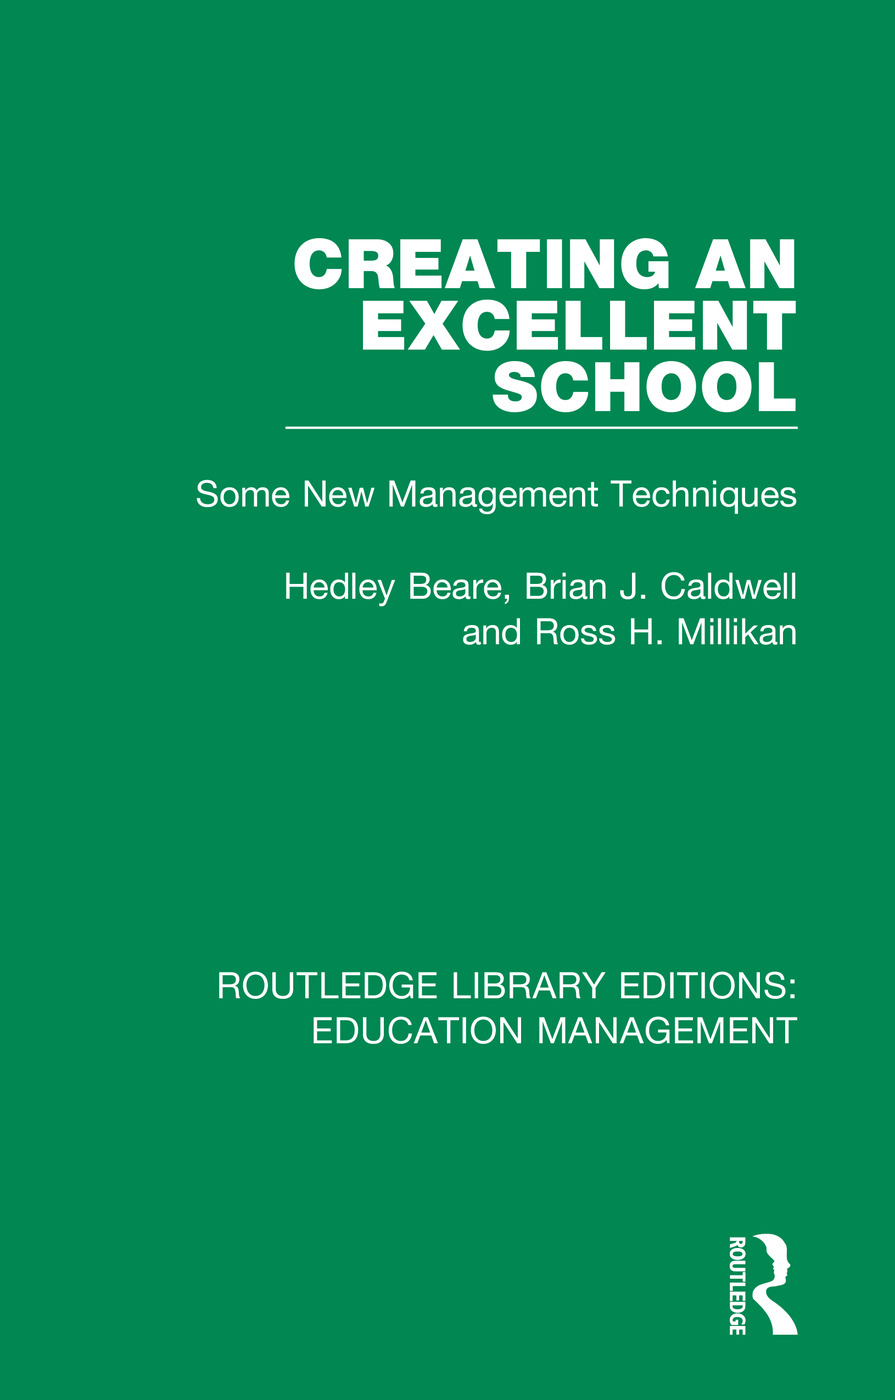 Creating an Excellent School: Some New Management Techniques book cover